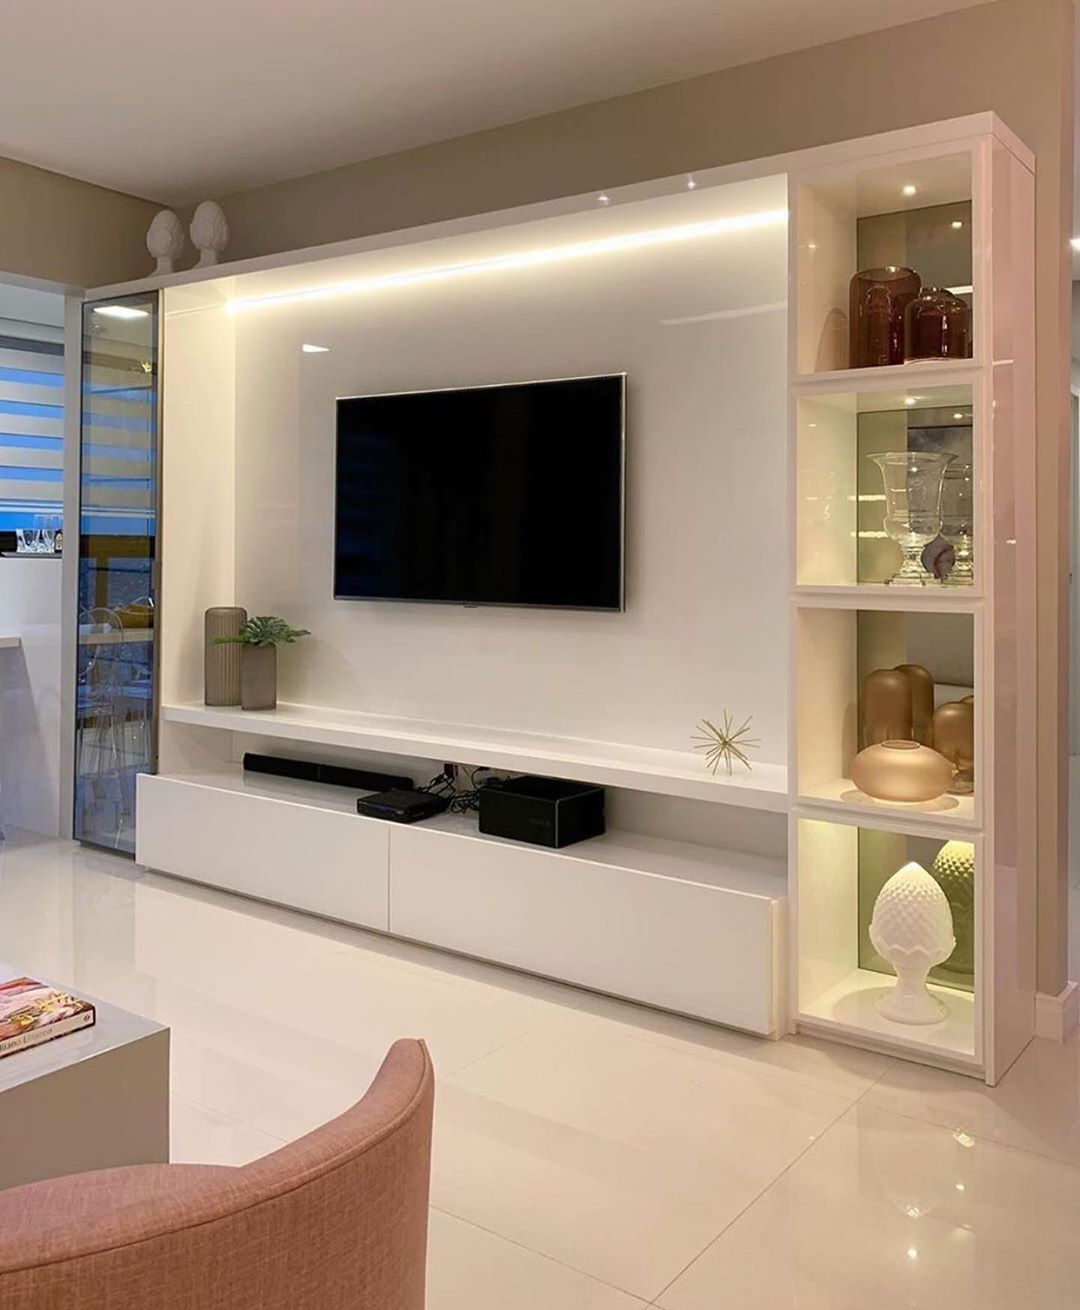 23 Jan 2020 Decorate Your Style On Instagram A Very Clean Very Elegant Home Th In 2020 Living Room Design Small Spaces Tall Ceiling Living Room Tv Room Design #tv #unit #designs #in #the #living #room